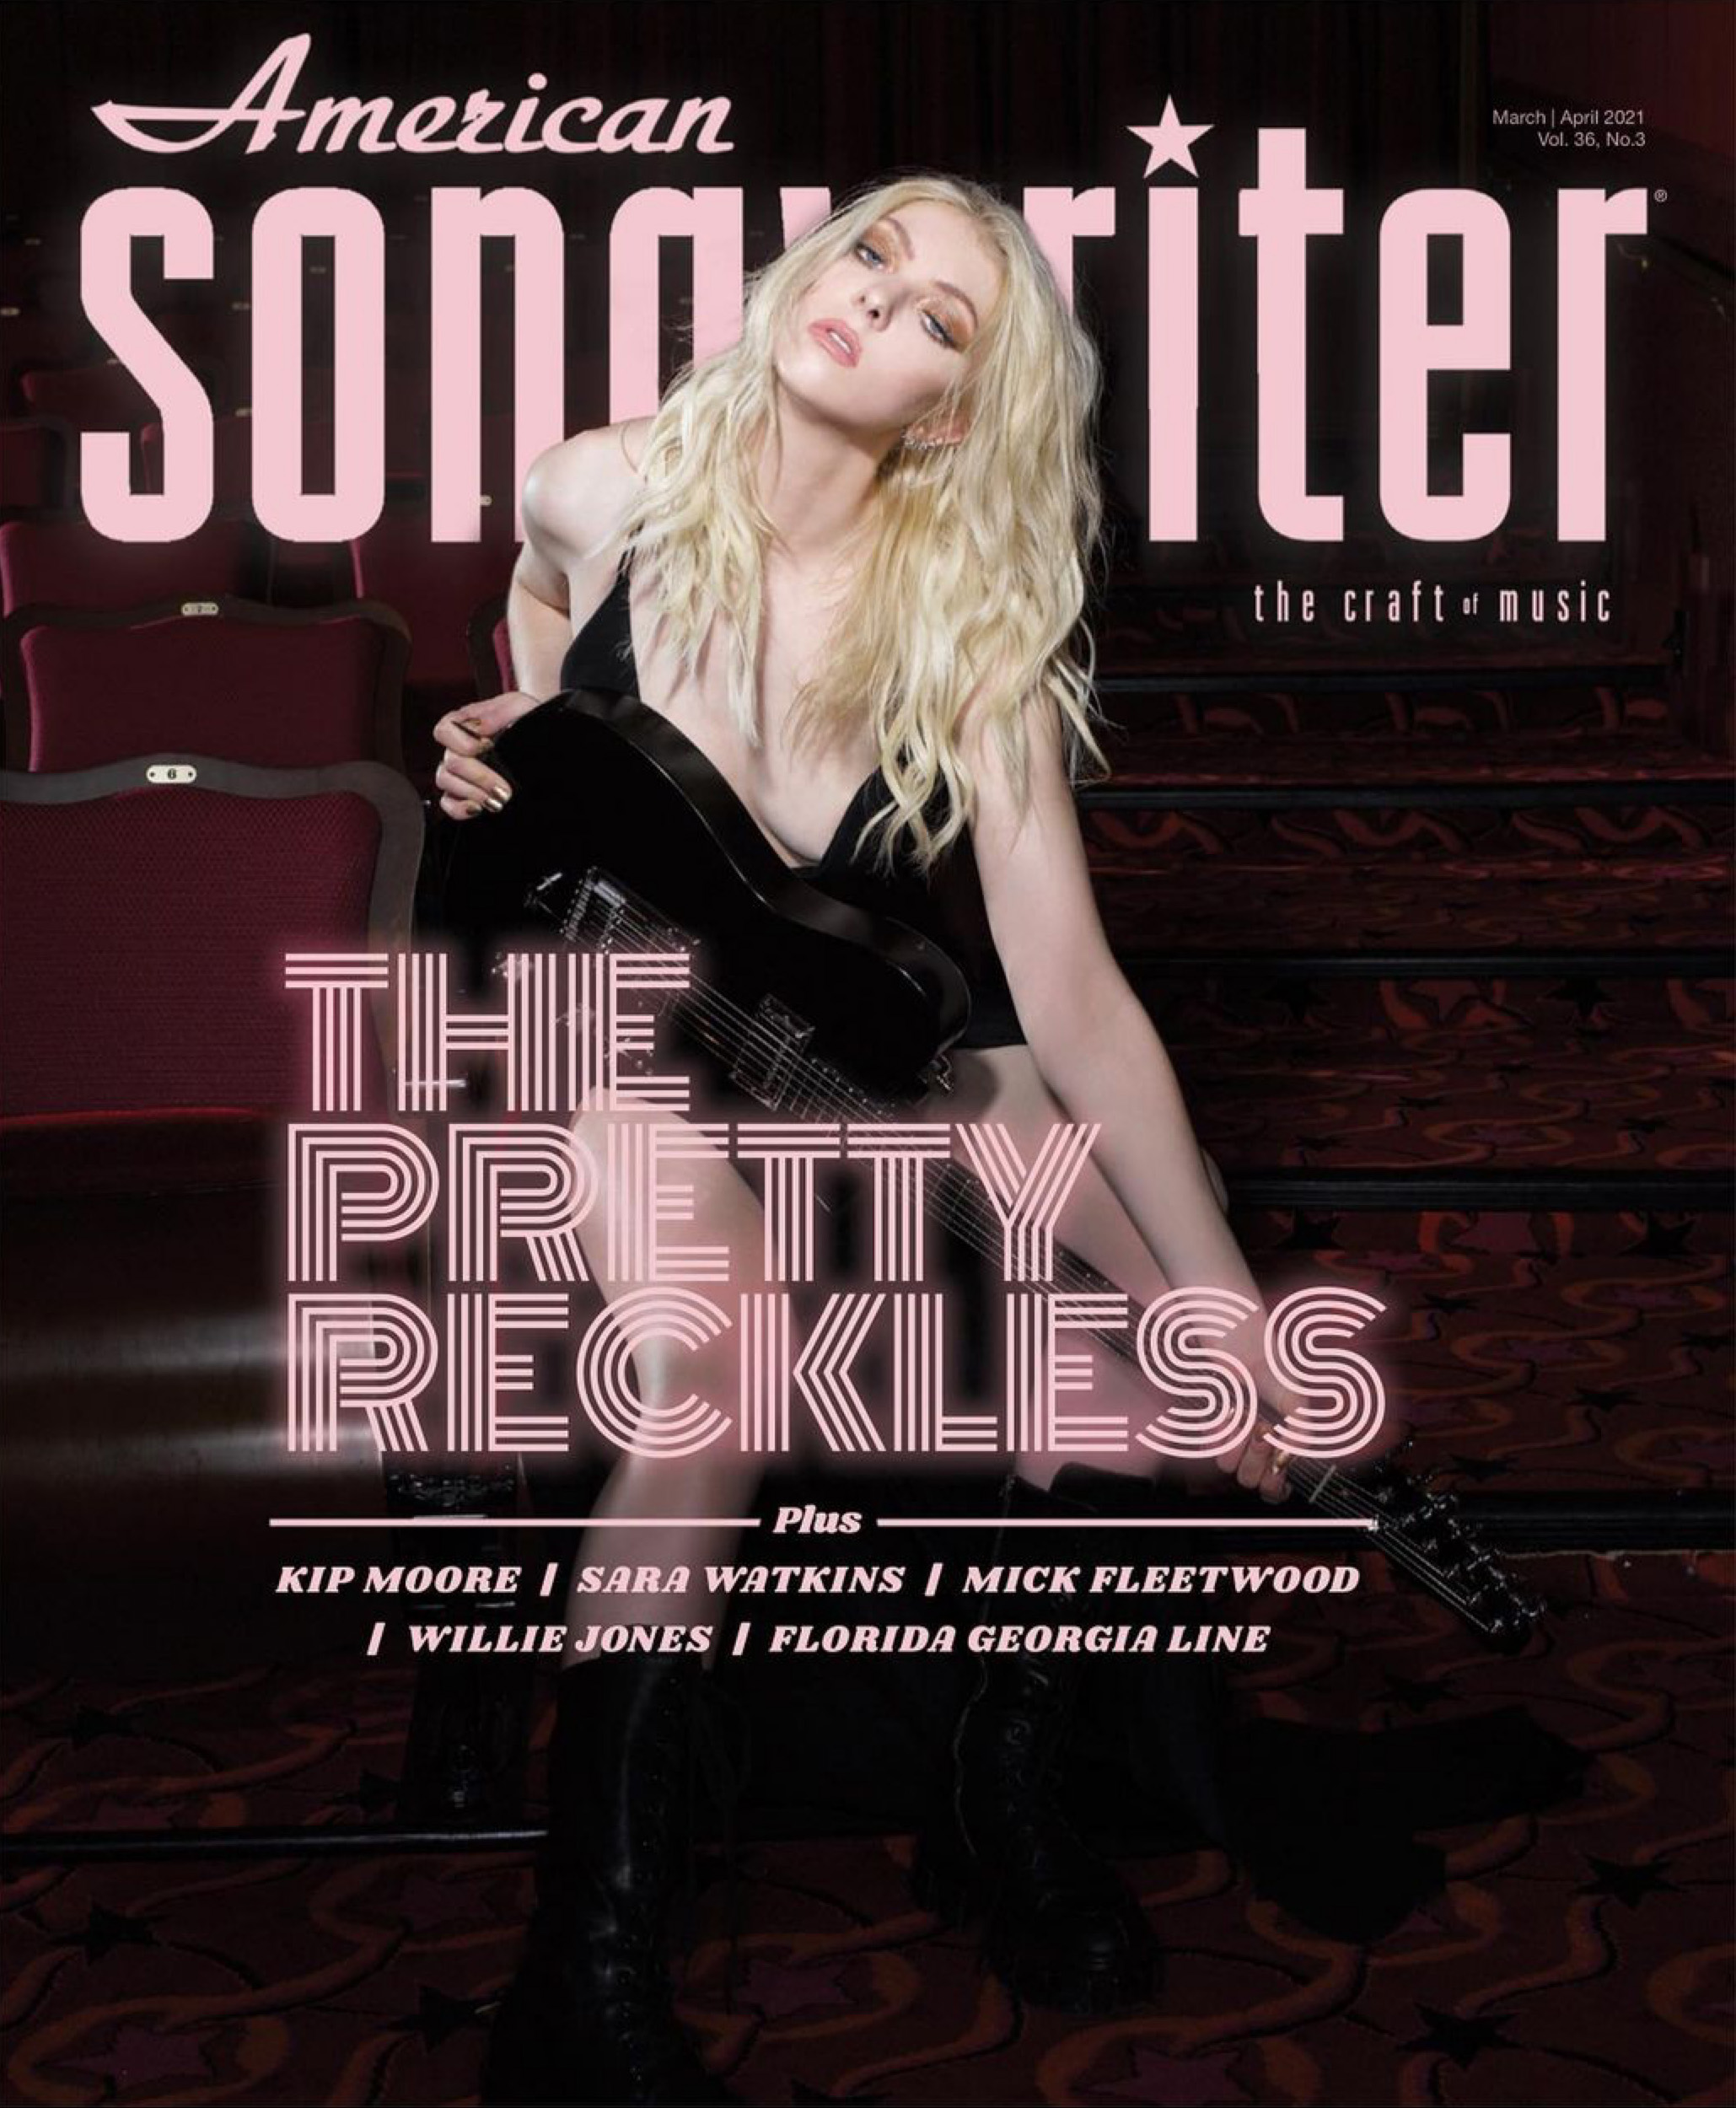 American-Songwriter-March-2021-Taylor-Momsen-The-Pretty-Reckless-Magazine-Cover-Photography-by-Indira-Cesarine.jpg